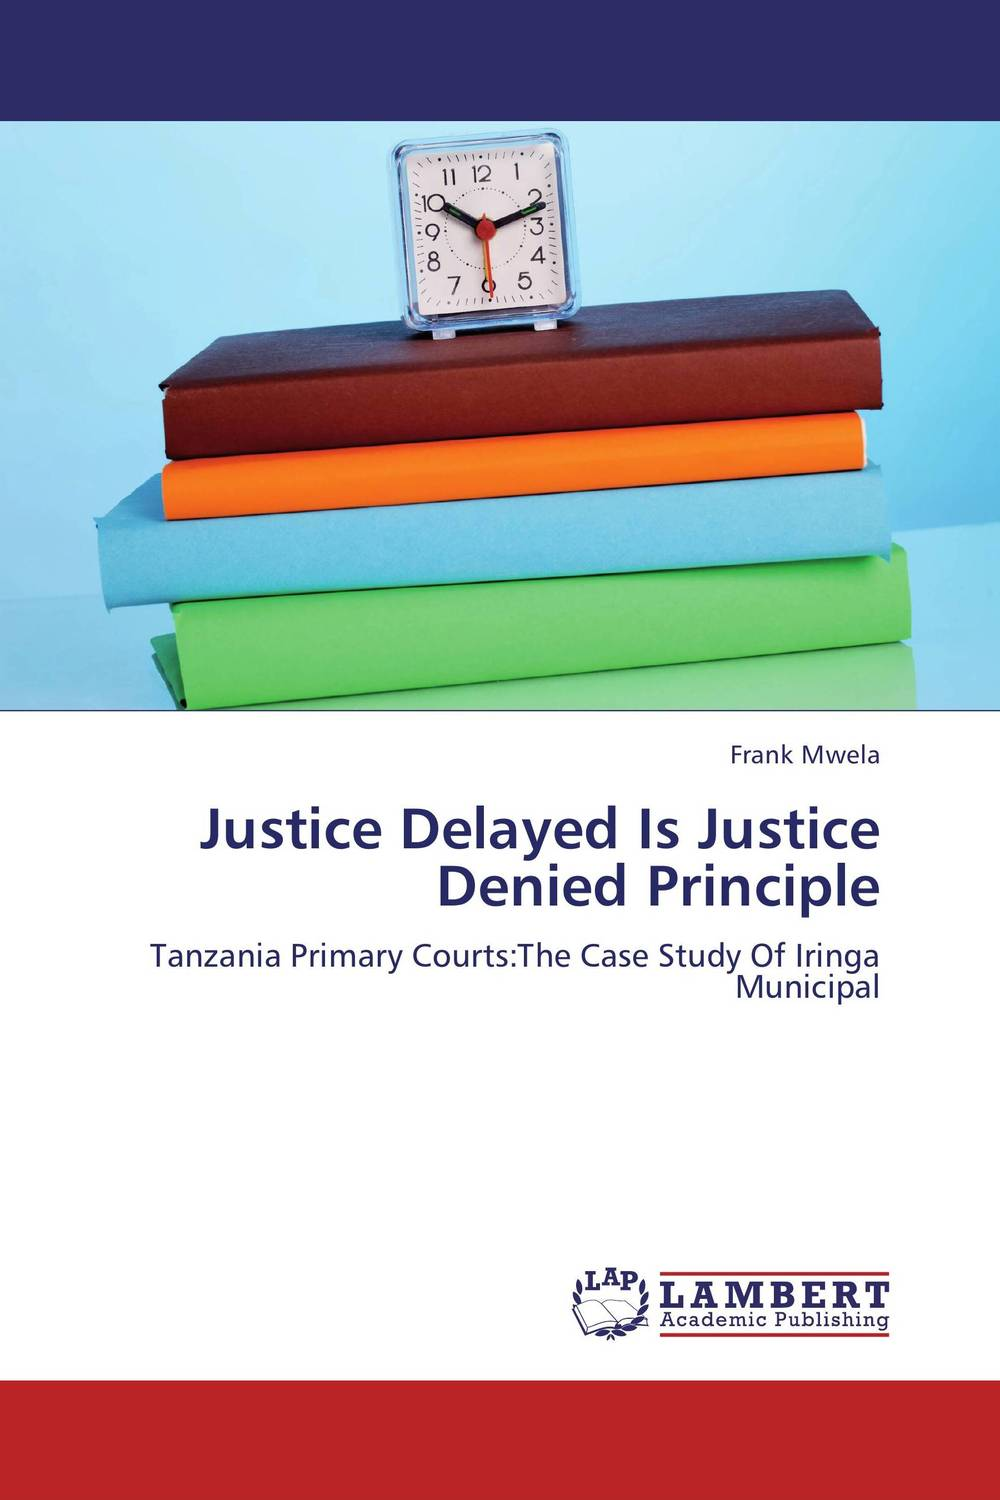 Justice Delayed Is Justice Denied Principle